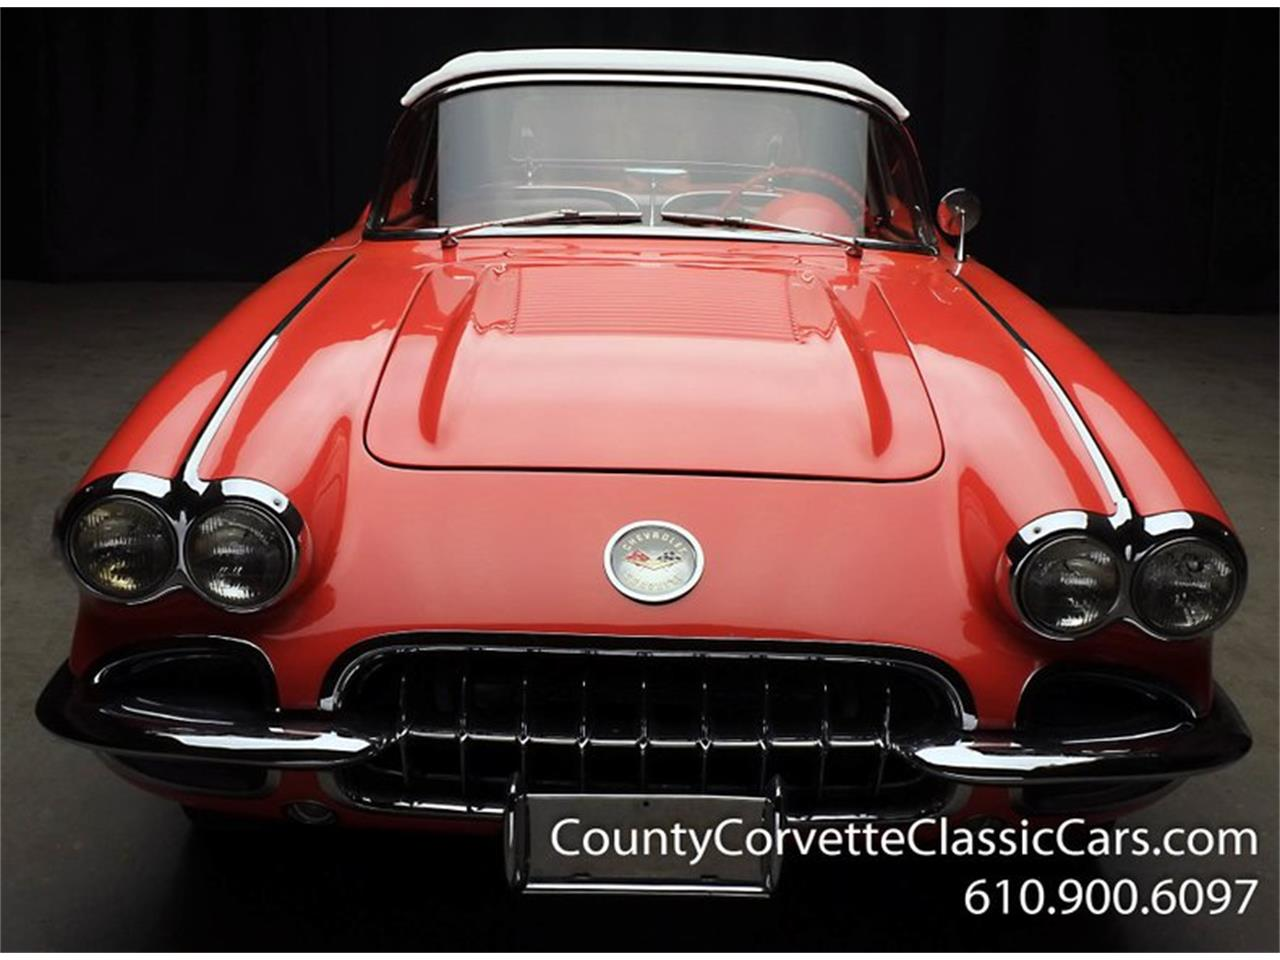 1958 Chevrolet Corvette for sale in West Chester, PA – photo 2